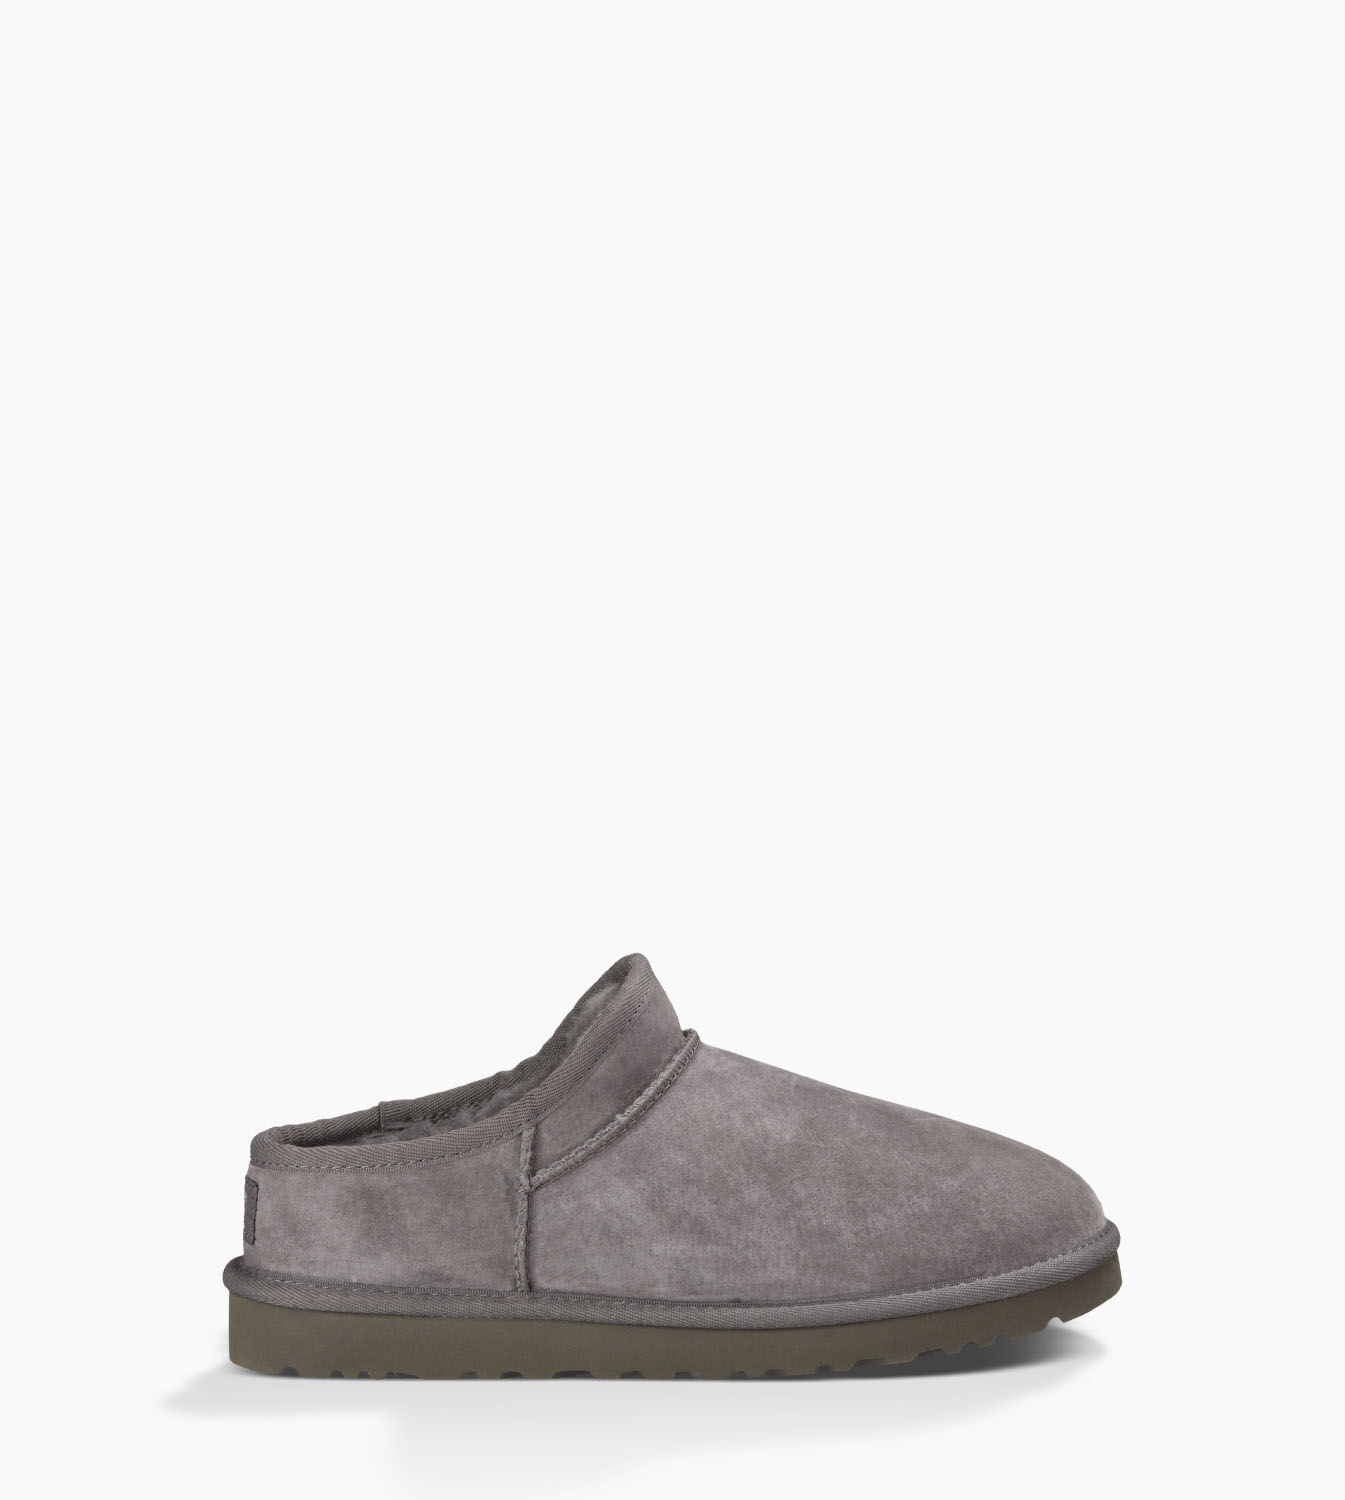 uggs chaussons femme